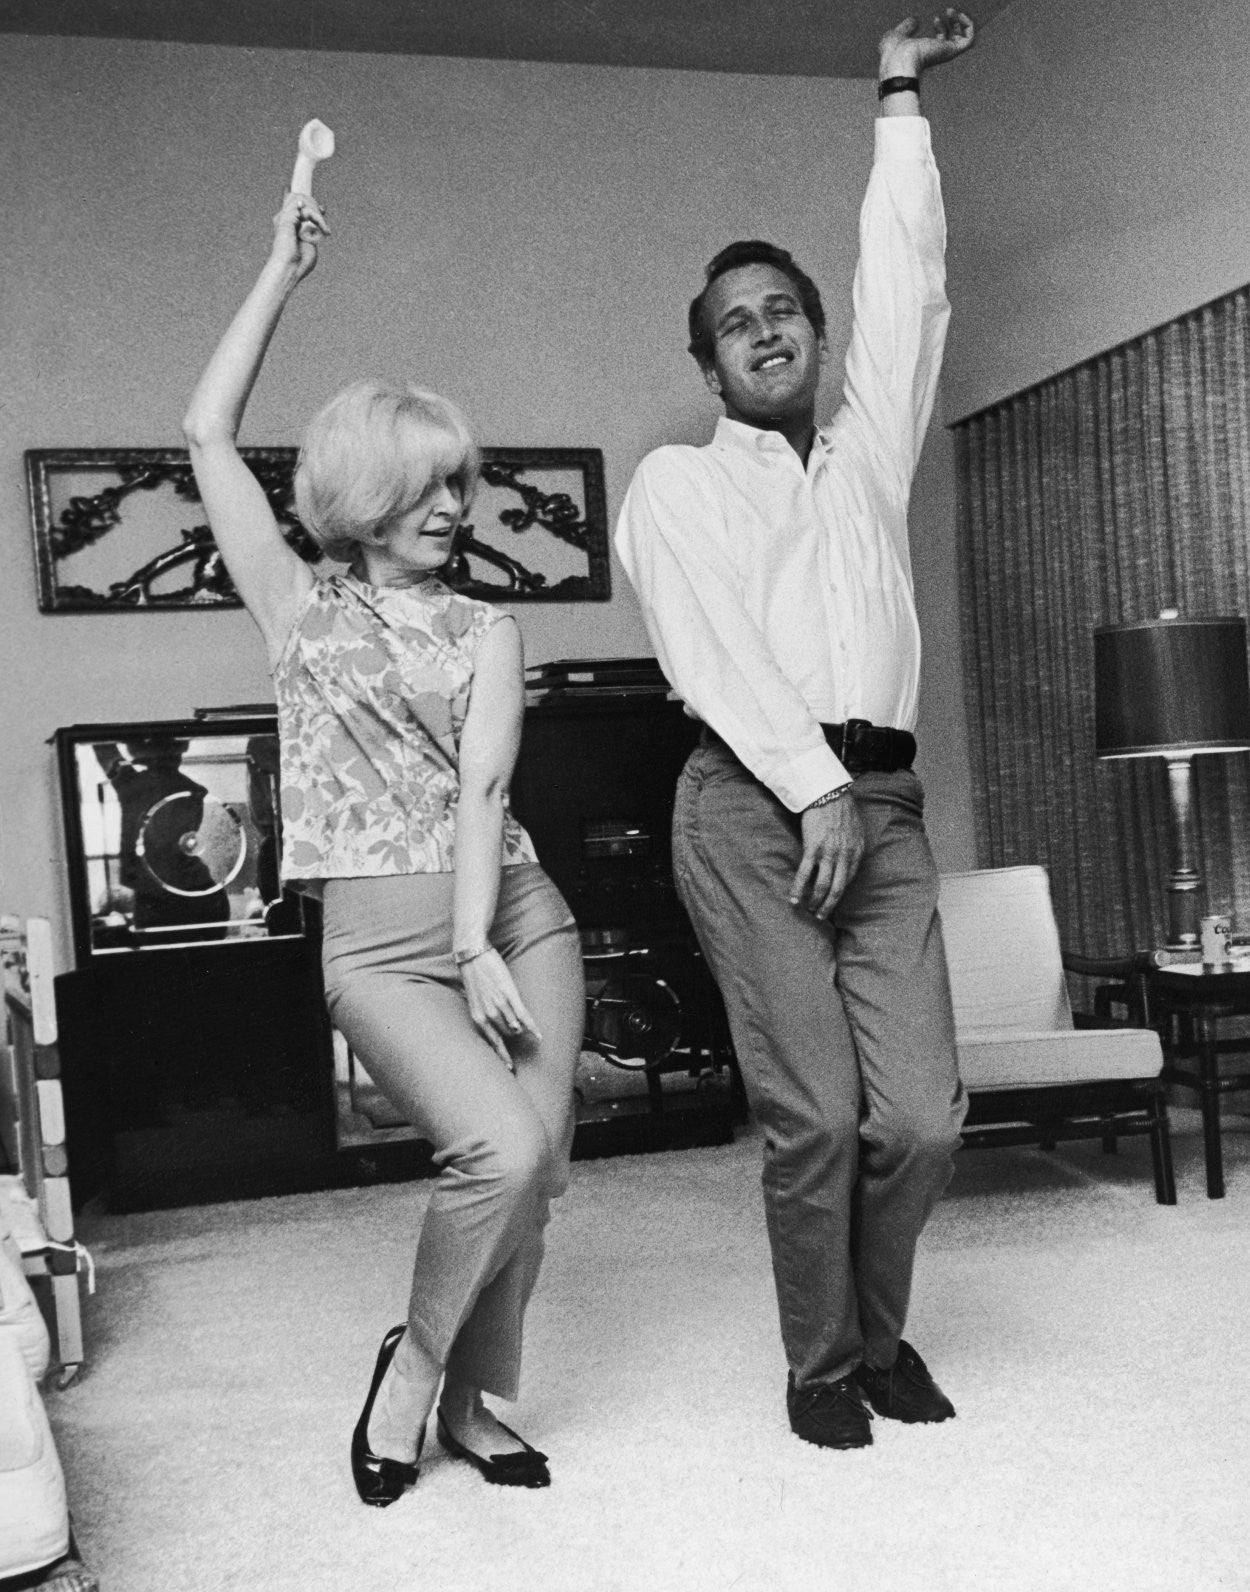 Joanne-Woodward-Paul-Newman-Dancing-e1428792513891